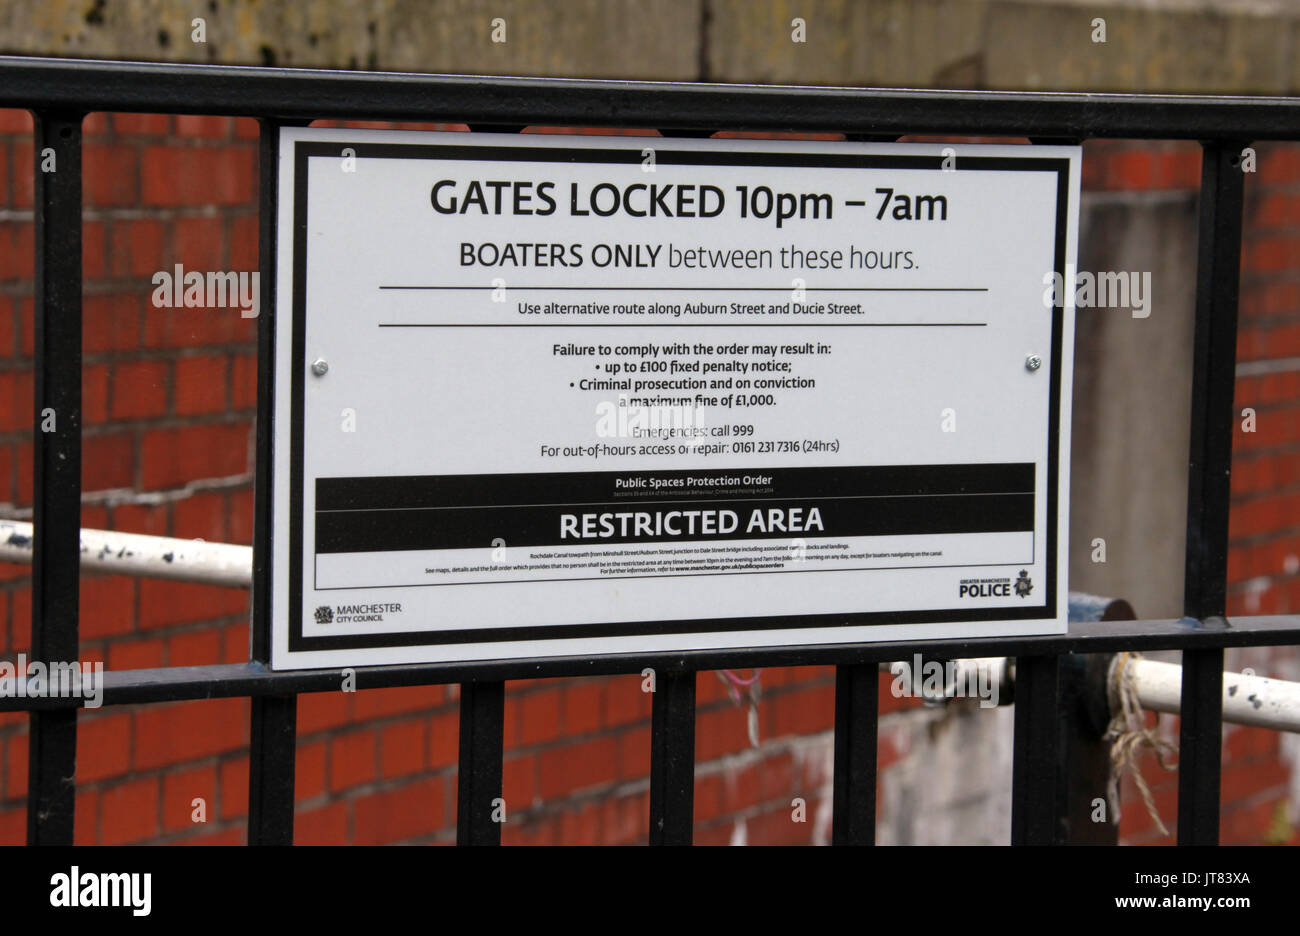 Rochdale Canal restricted area sign in Manchester City Centre - Stock Image